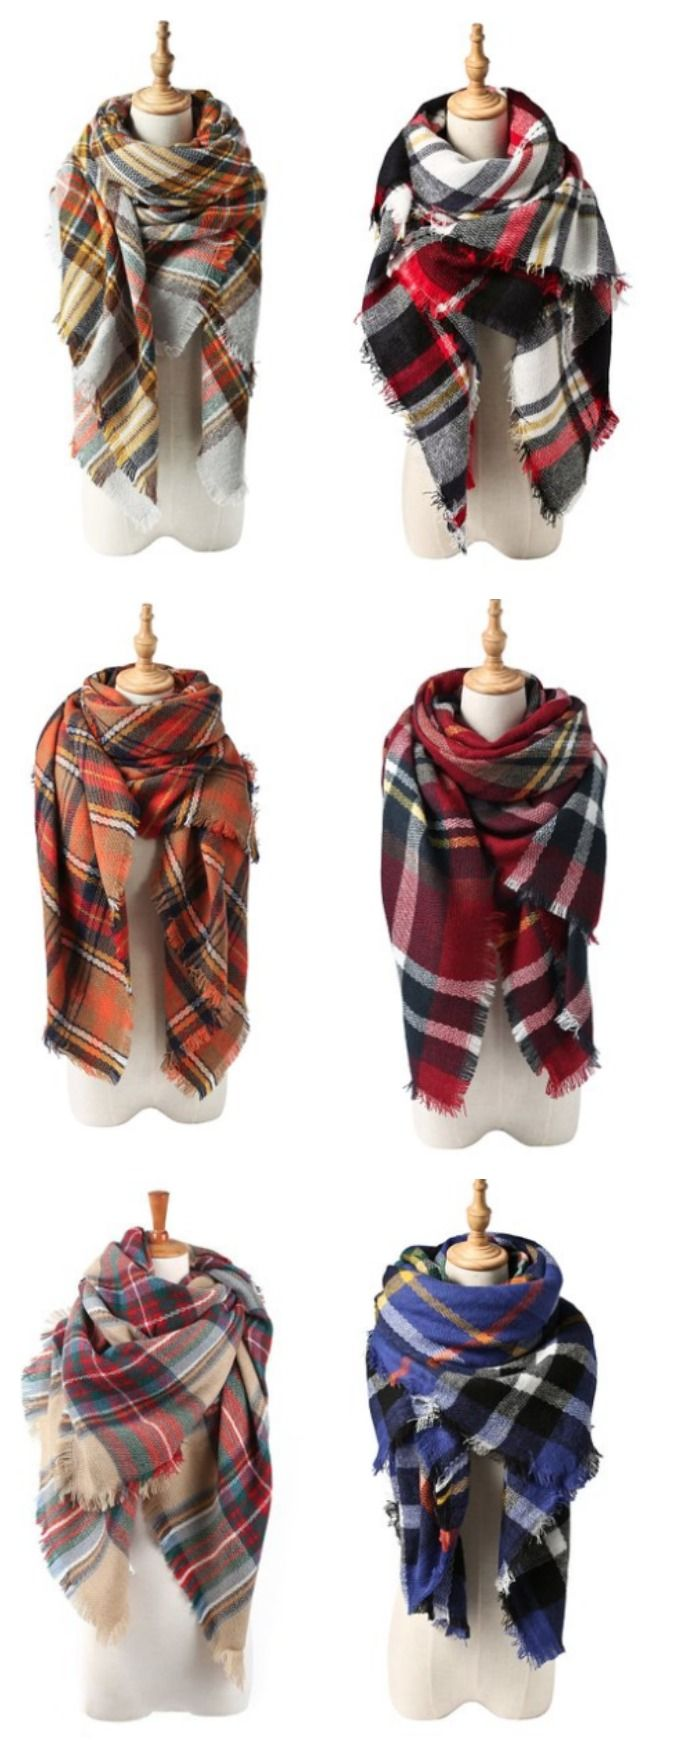 Cozy Blanket Scarf- sooooo many fun colors to choose from! These are just like the original Zara scarf! Fall needs to hurry up and get here so I can pull this baby out!! {aff}